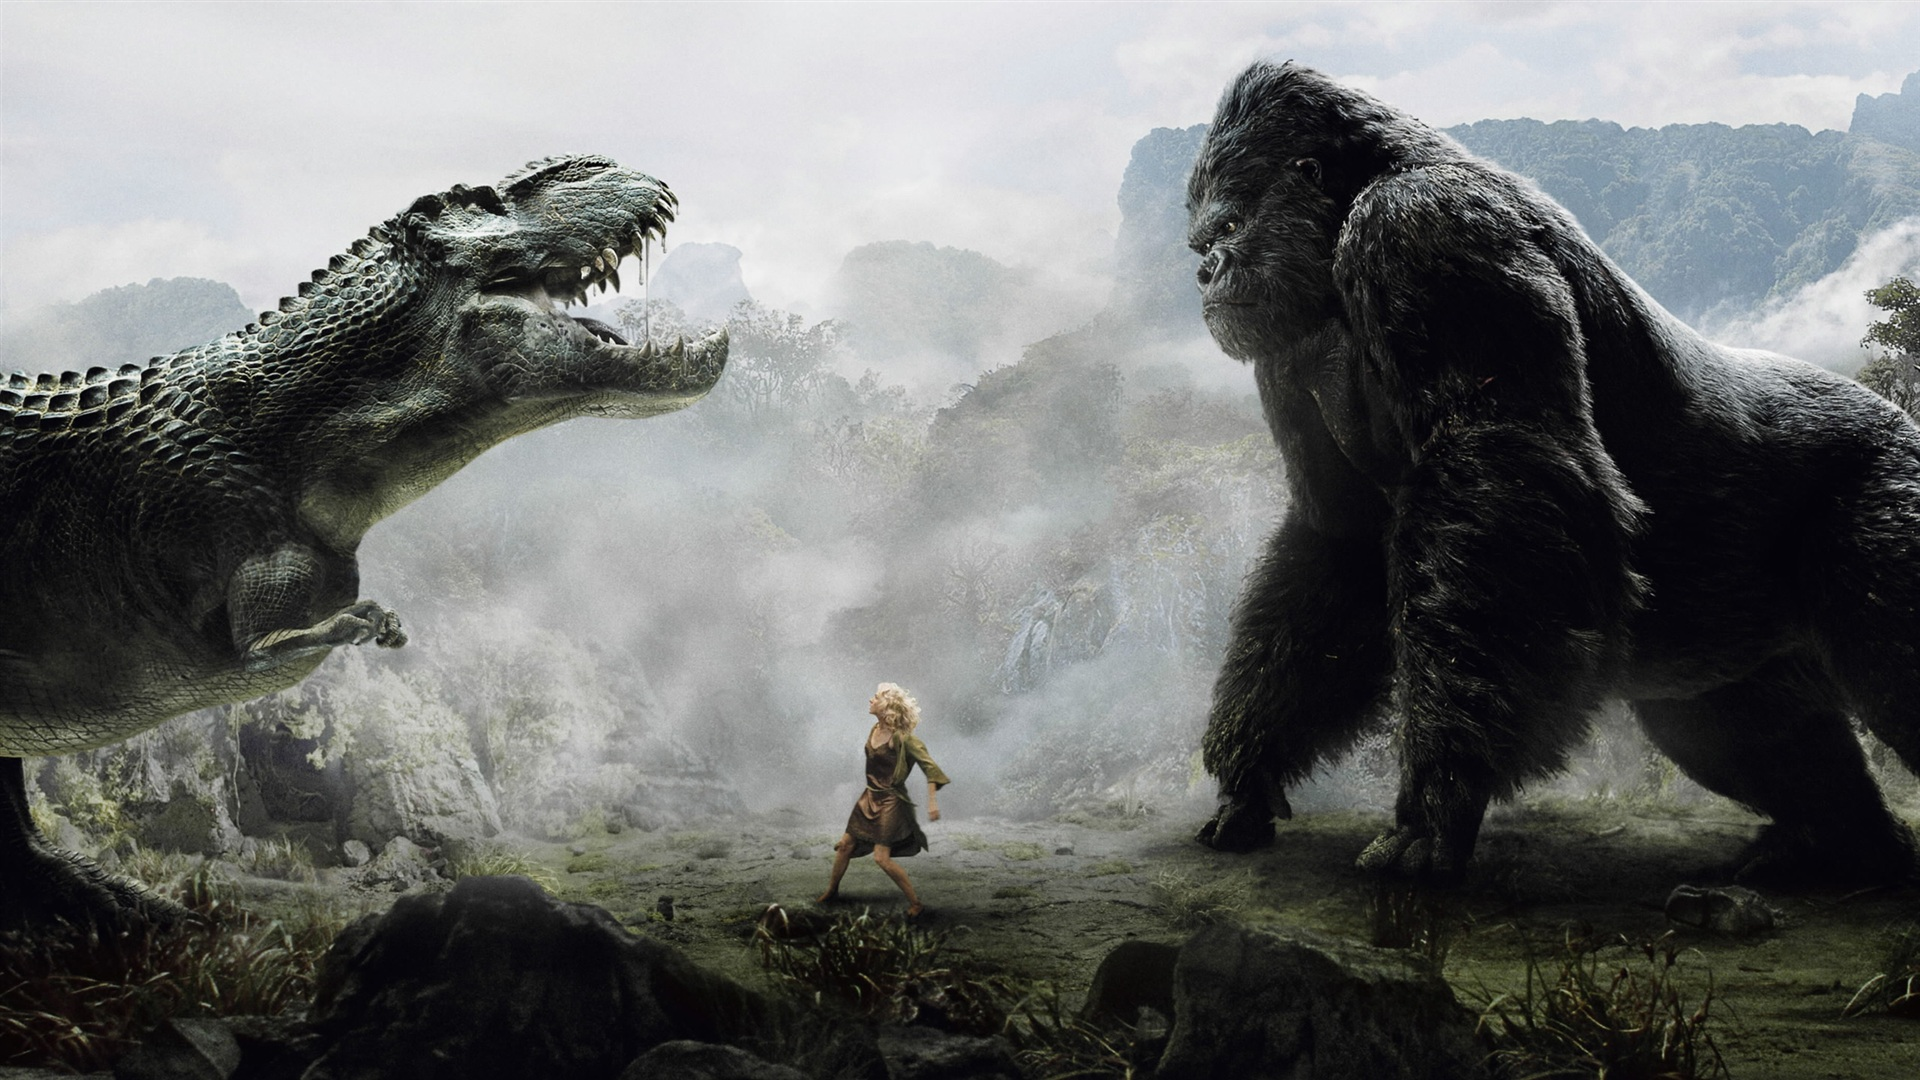 king-kong-1920x1080-Need-iPhone-S-Plus-Background-for-IPhoneSPlus-Follow-wallpaper-wp3407821